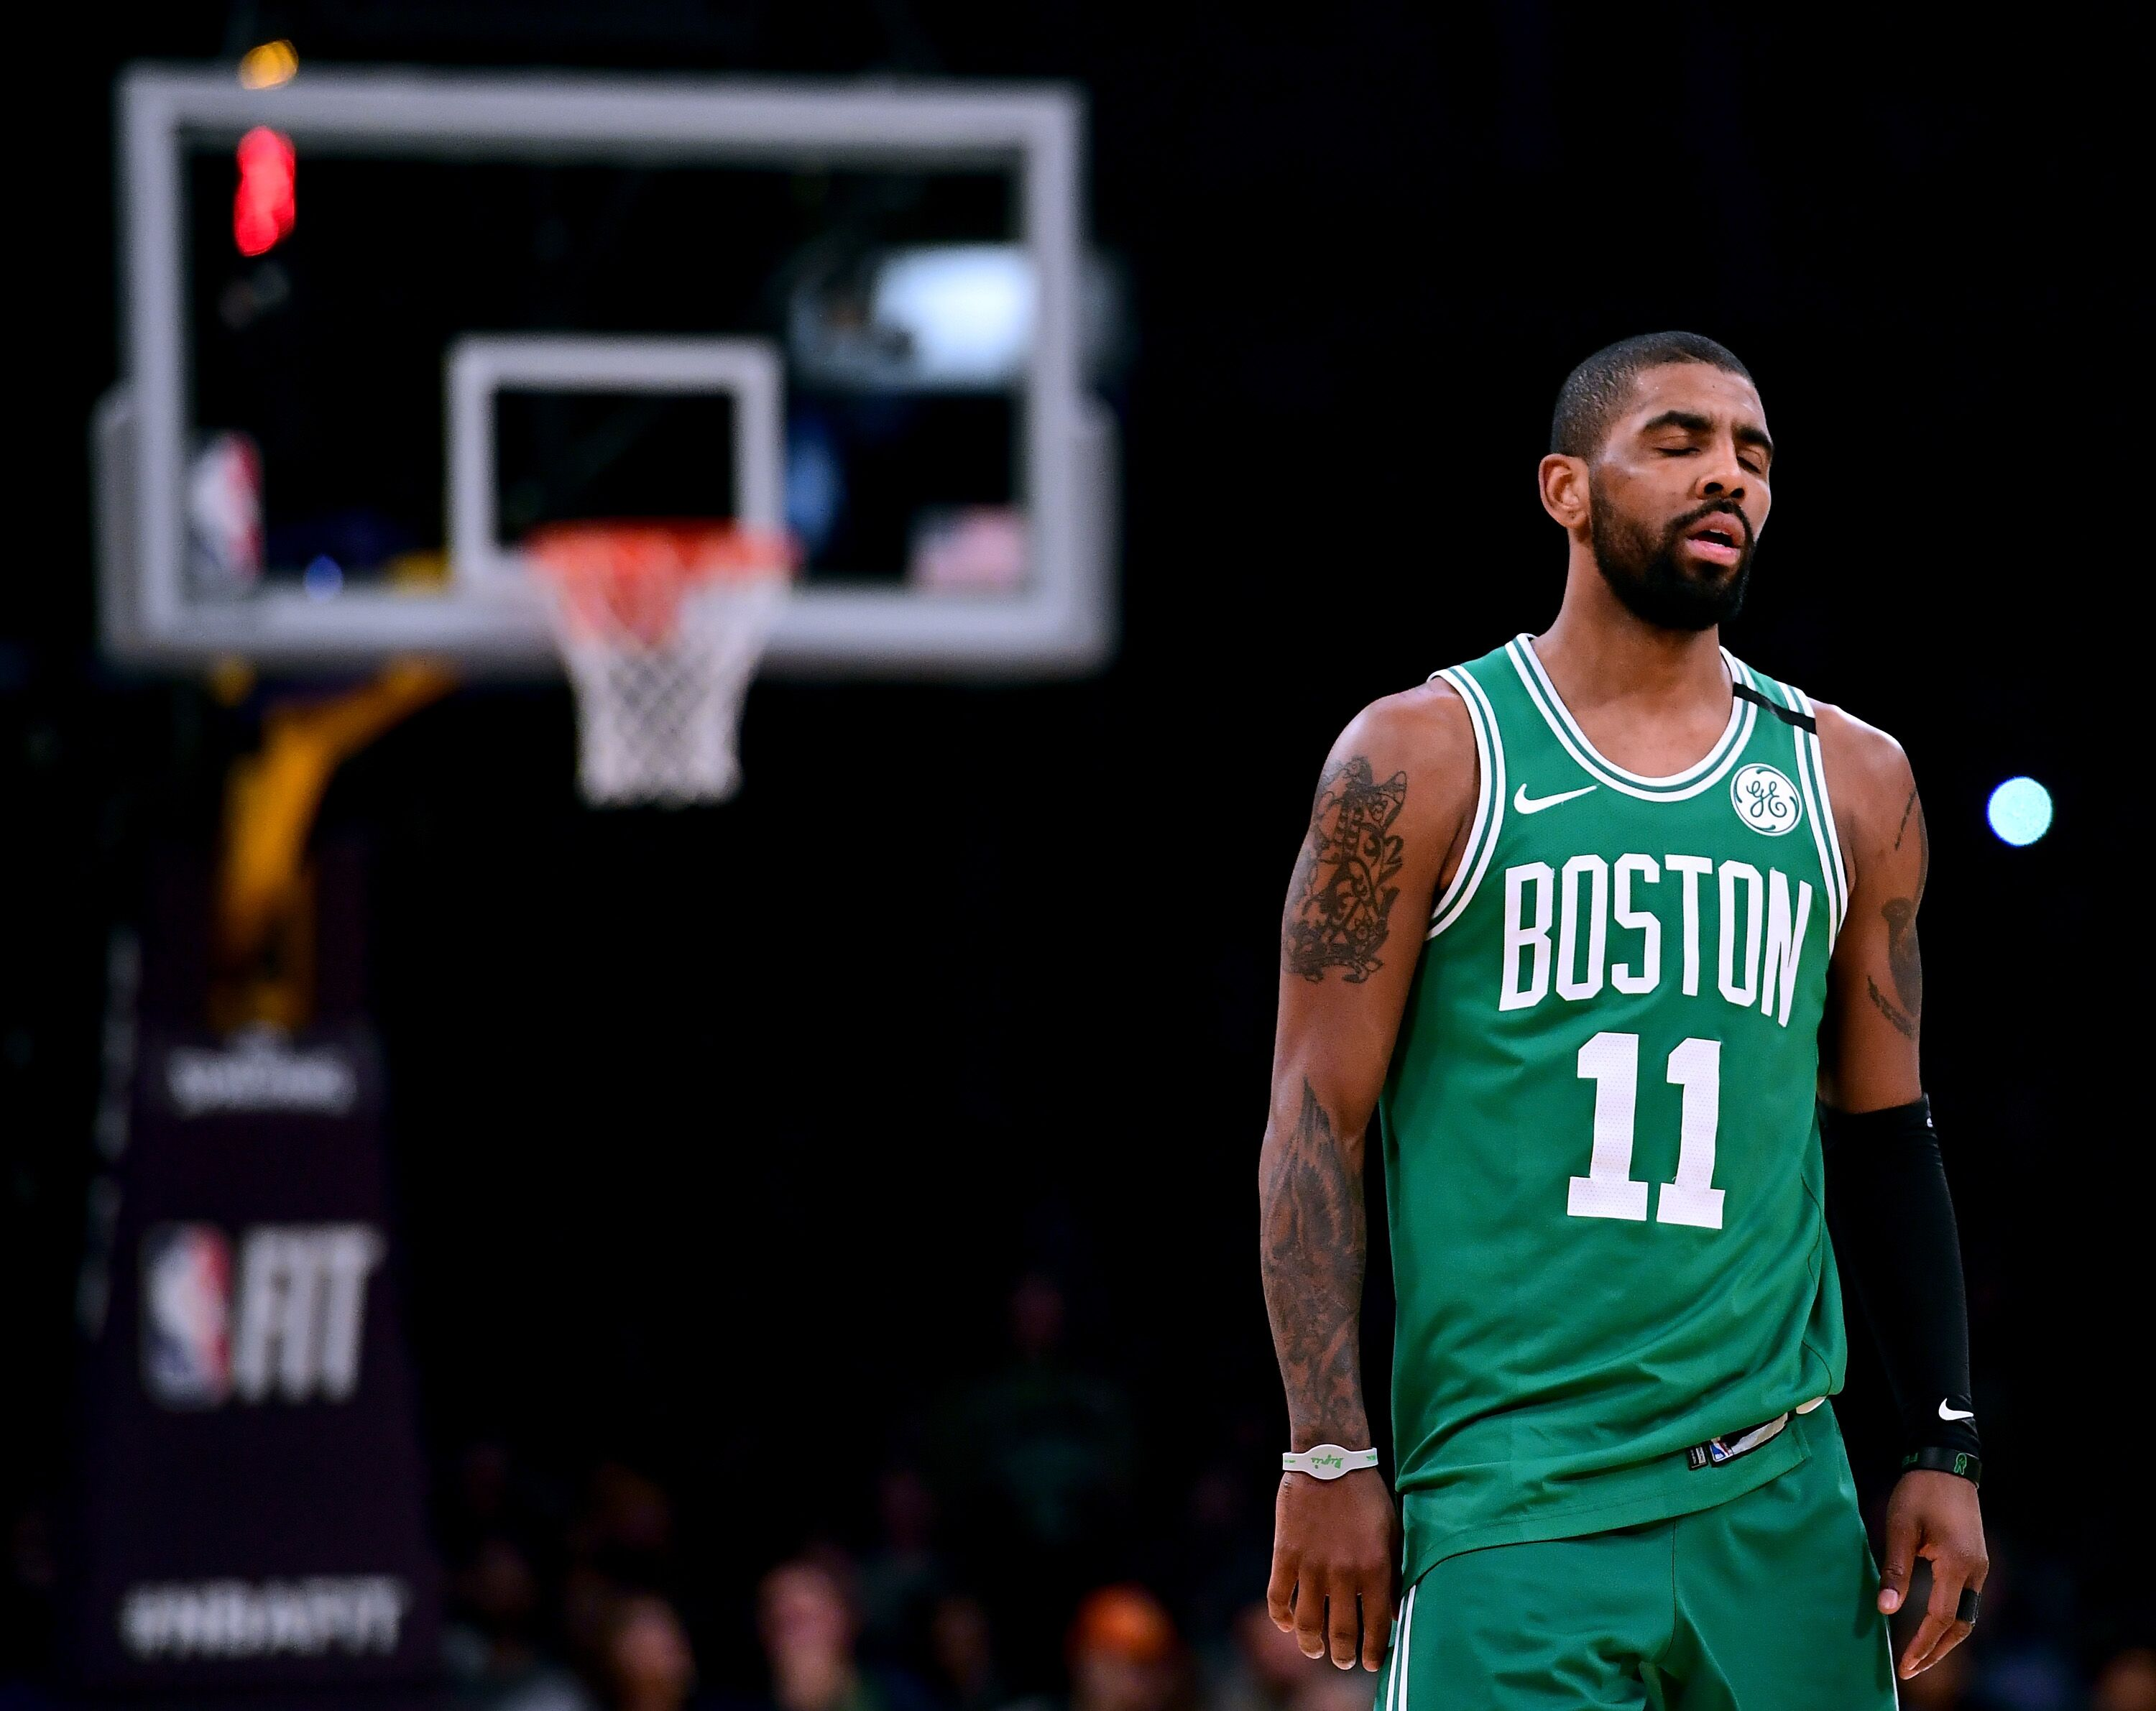 909497584-boston-celtics-v-los-angeles-lakers.jpg